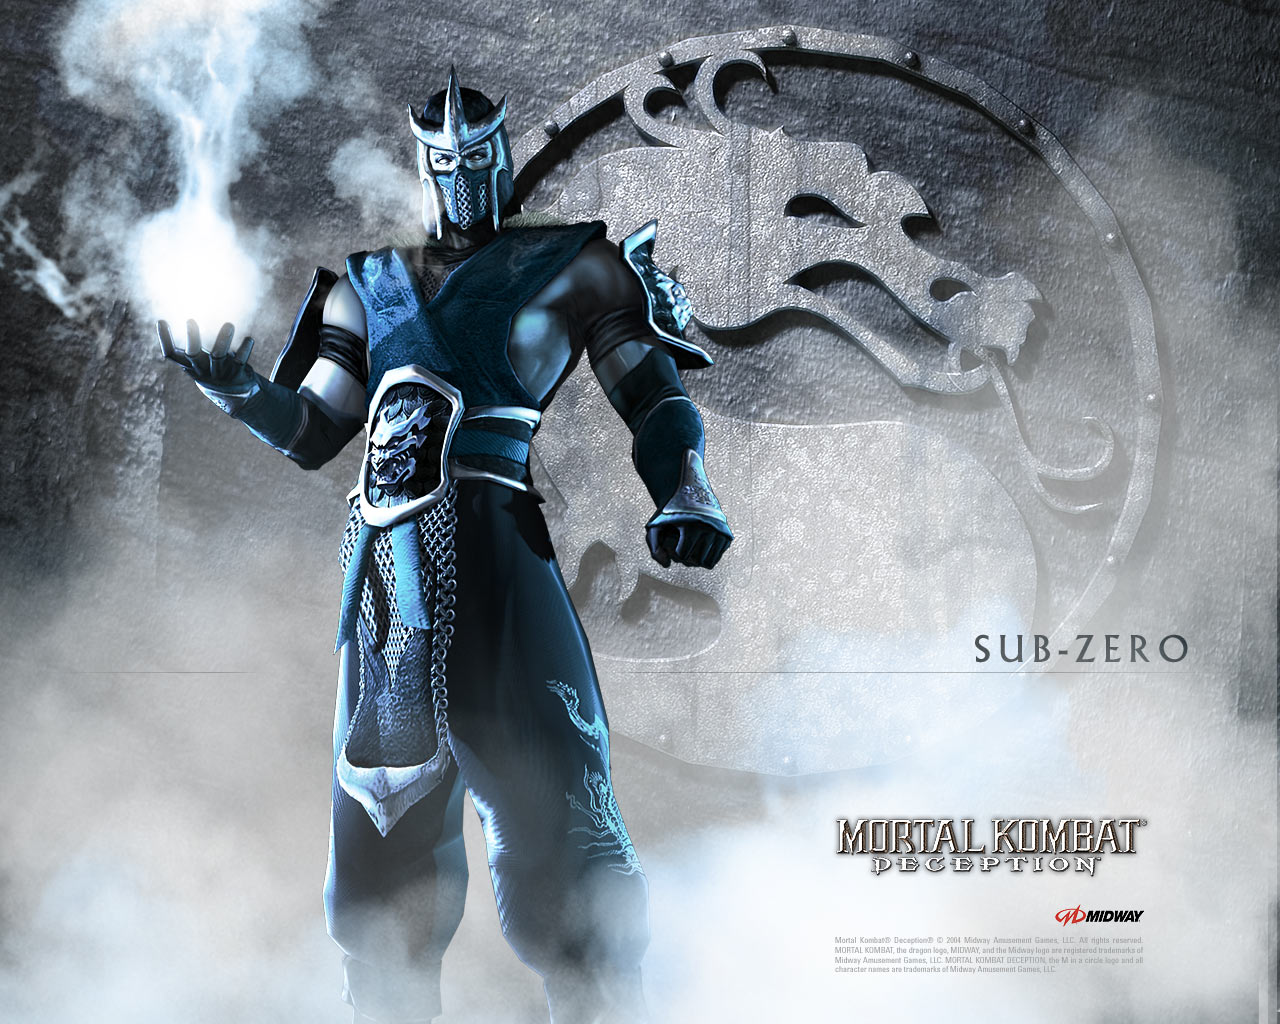 mortal kombat images mk wallpapers hd wallpaper and background